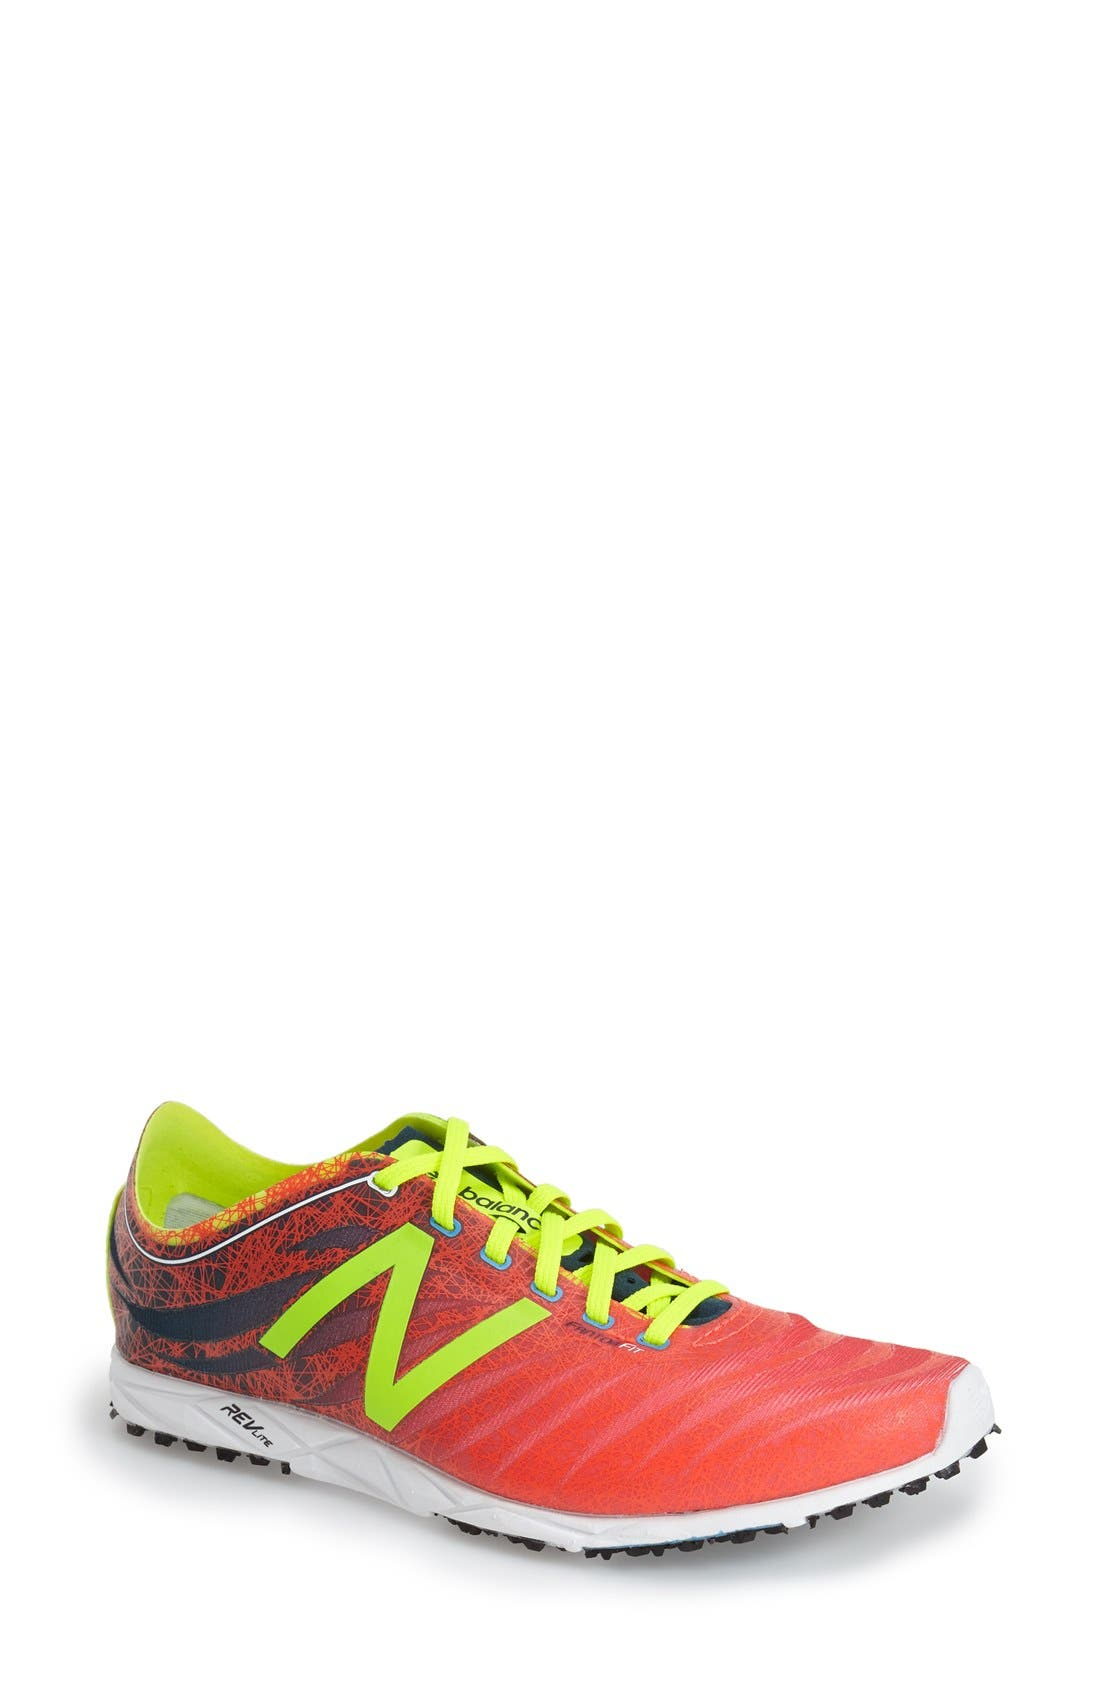 Main Image - New Balance '5000' Running Shoe (Women)